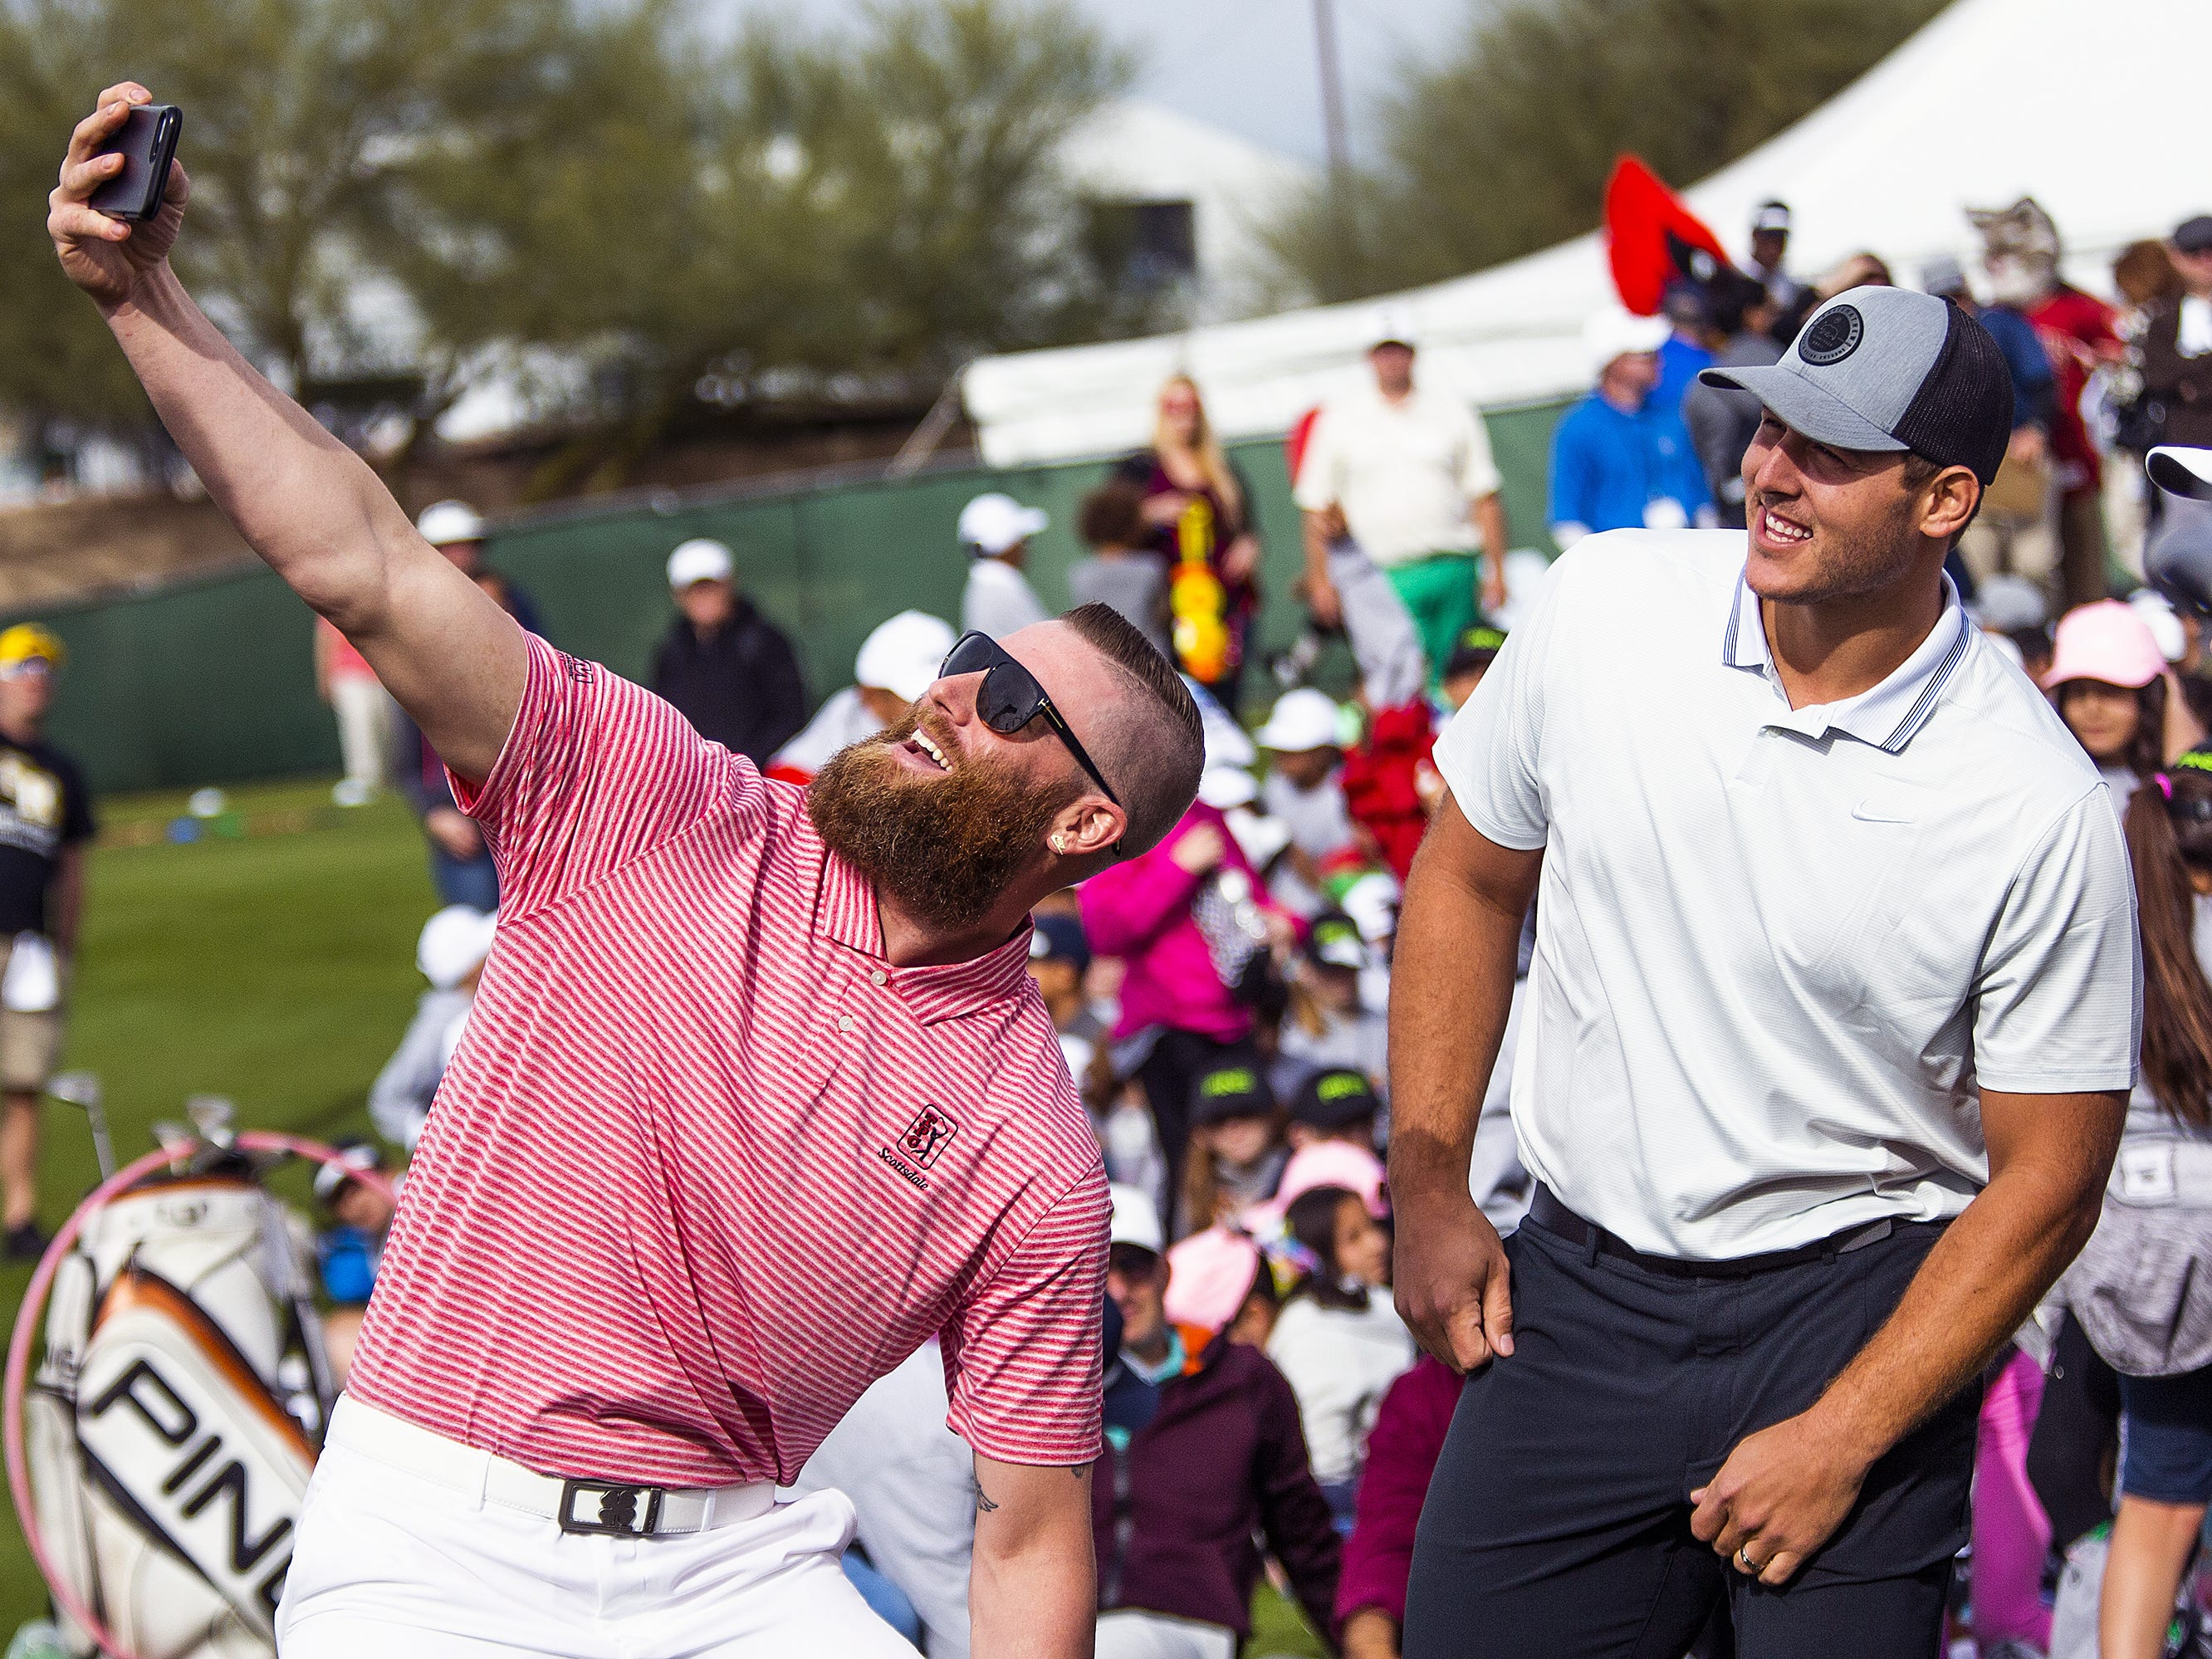 Arizona Diamondbacks pitcher Archie Bradley takes a selfie with Chicago Cubs first baseman Anthony Rizzo and a crowd of children at the conclusion of the R.S. Hoyt Jr. Family Foundation Dream Day Junior Golf Clinic presented by PING at the Waste Management Phoenix Open at the TPC Scottsdale, Tuesday, January 29, 2019.